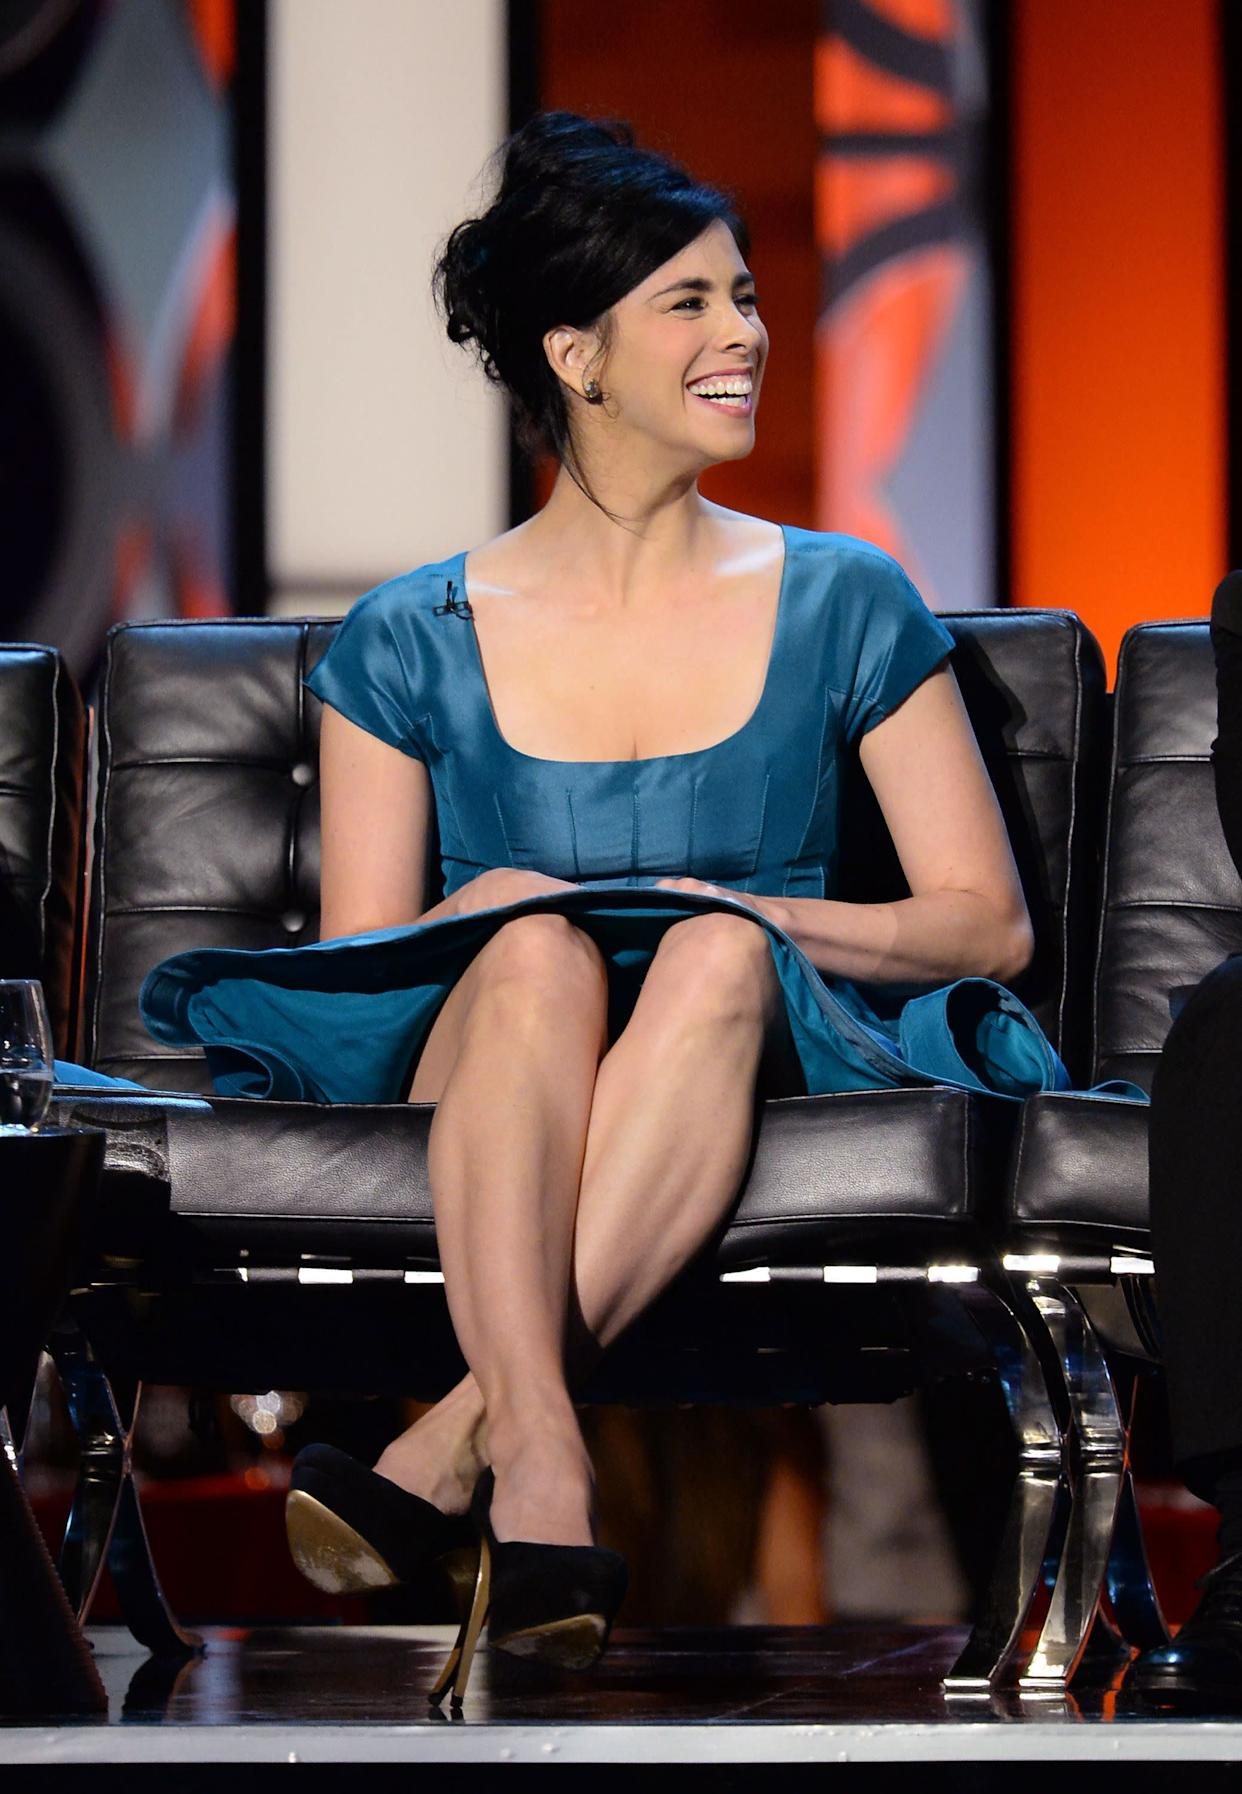 CULVER CITY, CA - AUGUST 25: Comedienne Sarah Silverman onstage during The Comedy Central Roast of James Franco at Culver Studios on August 25, 2013 in Culver City, California. The Comedy Central Roast Of James Franco will air on September 2 at 10:00 p.m. ET/PT. (Photo by Jason Merritt/Getty Images for Comedy Central)